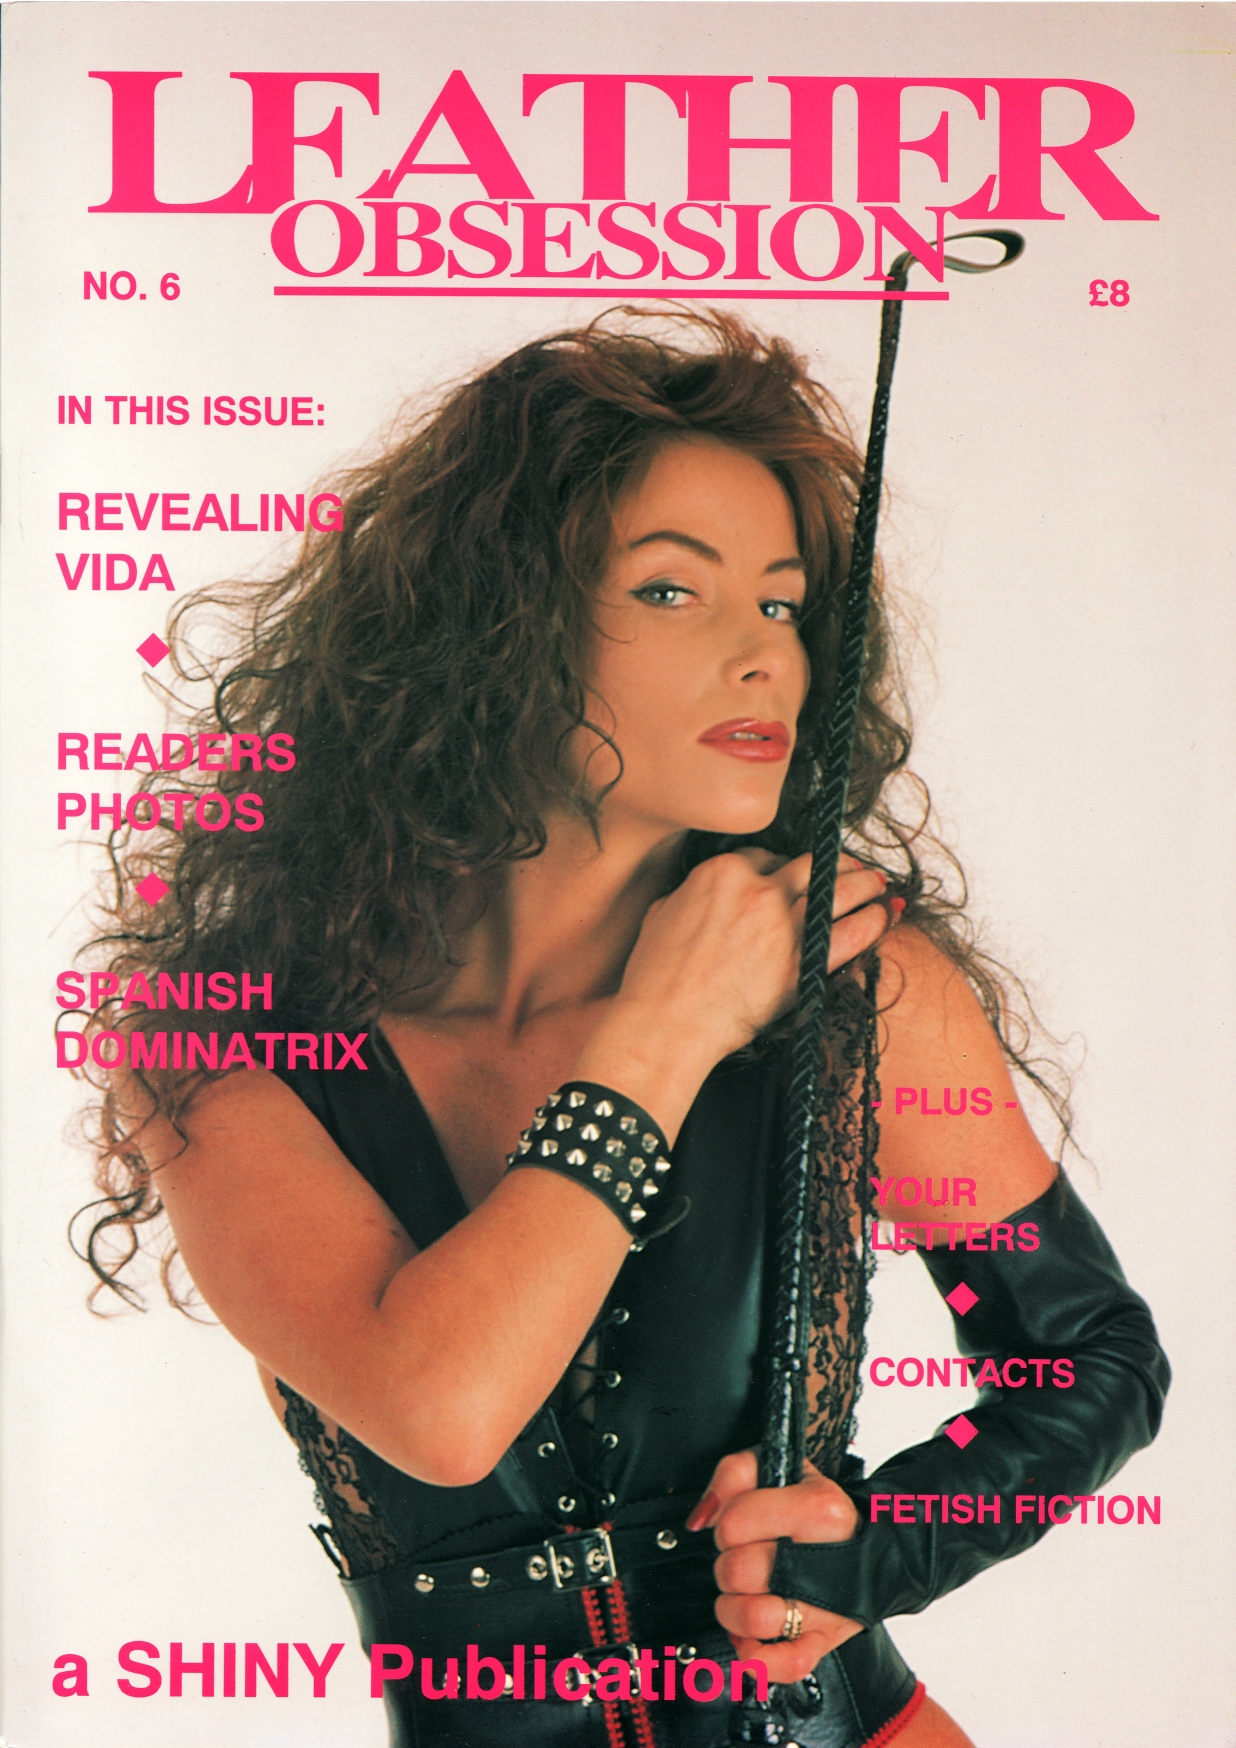 856749487_LeatherObsession6FrontCover_122_162lo.jpg